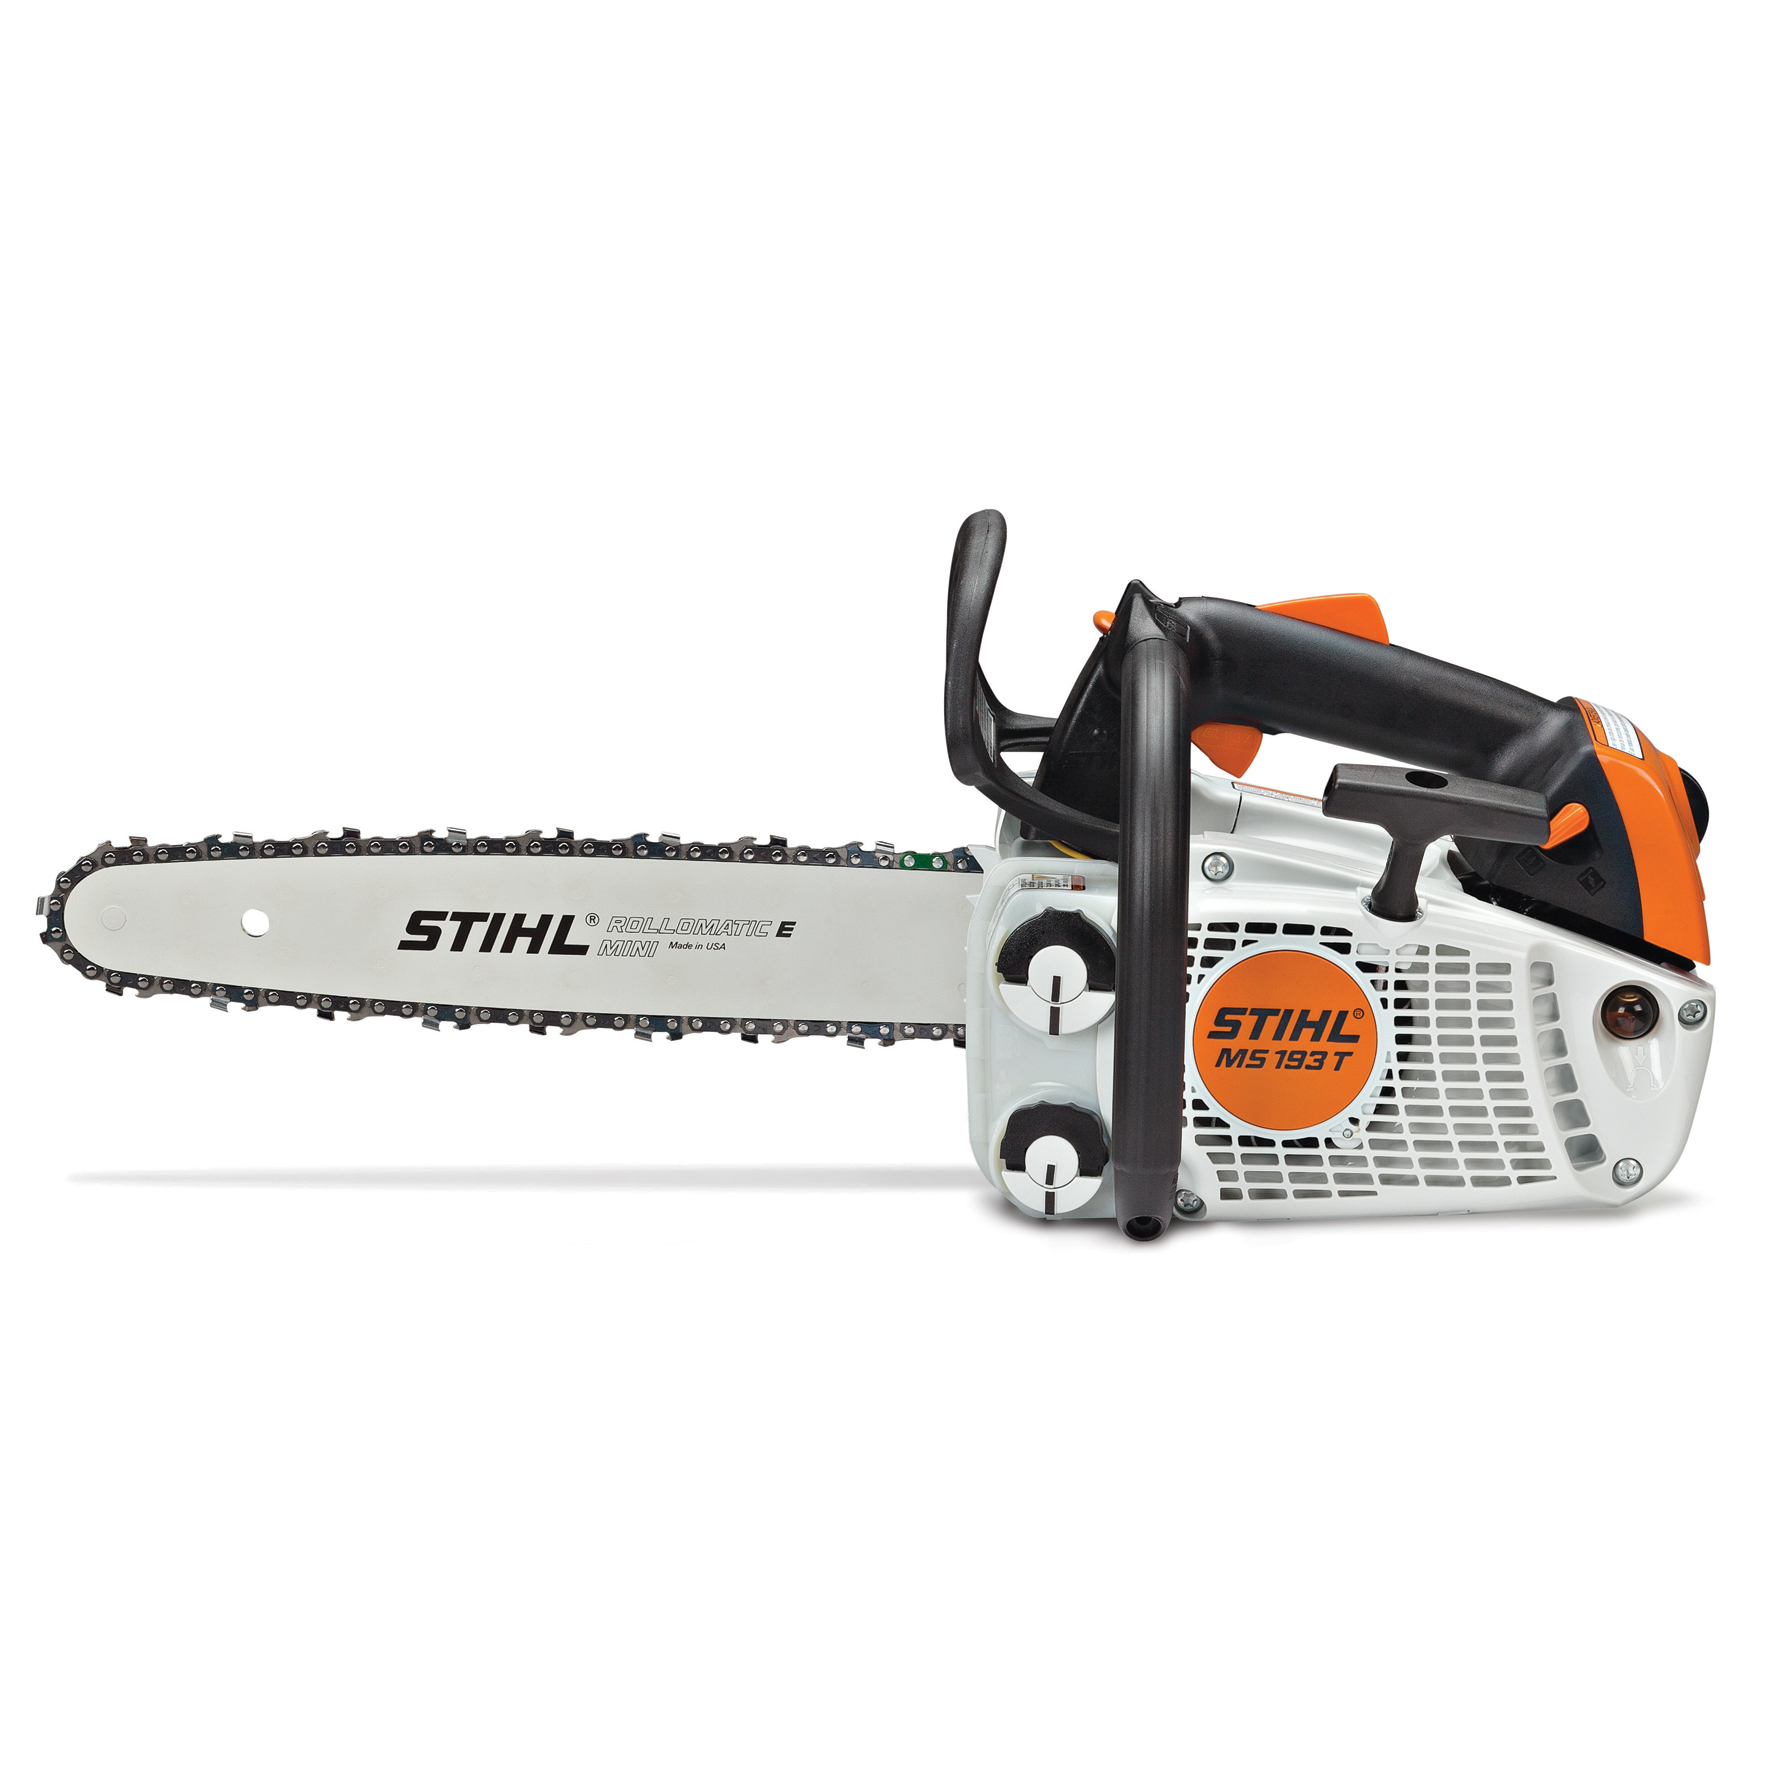 Stihl ms 193 t top handle chainsaw australian mower supply - Stihl ms 193 t ...